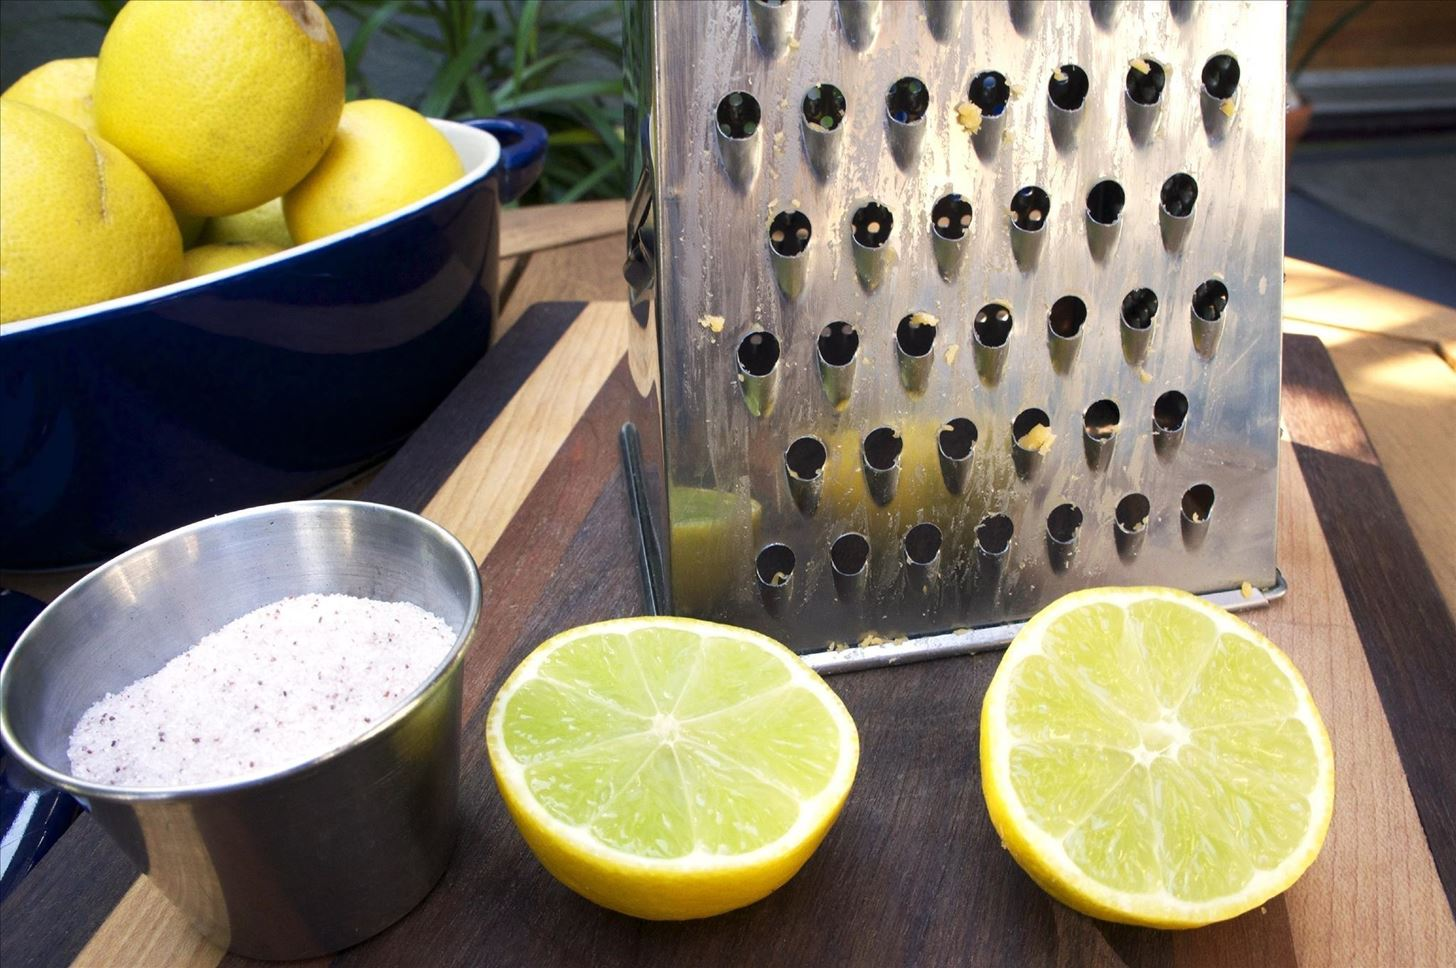 Lemon Aid: Use Lemons to Clean Copper, Keep Pasta from Sticking, & More